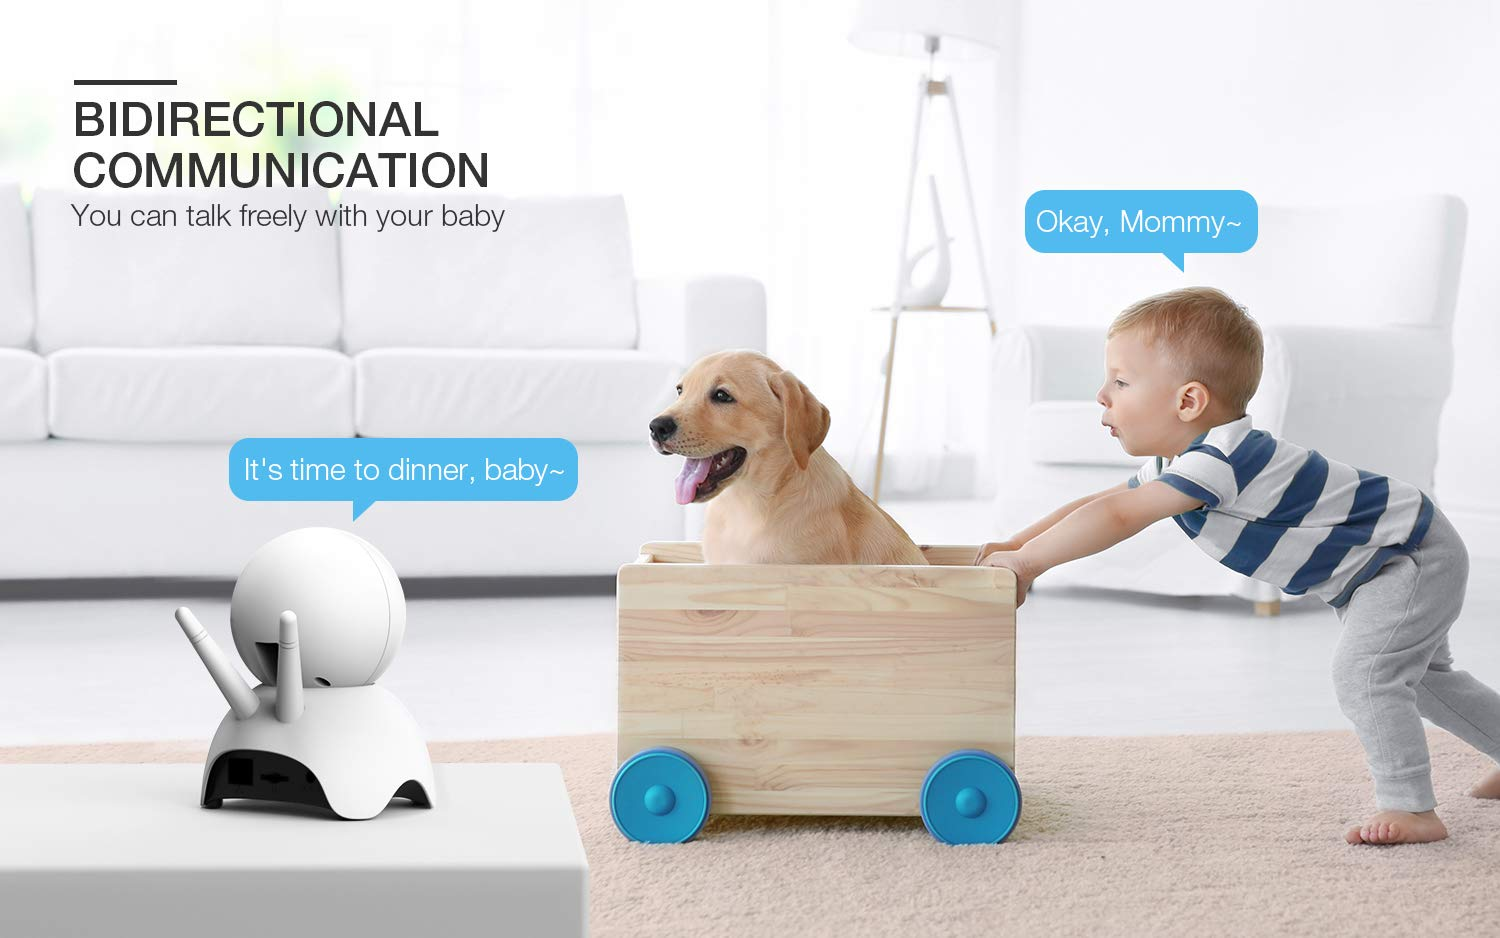 Baby Monitor, BOIFUN Baby Video Camera with 5'' 1280x720P HD Screen 2000mAh Rechargeable Battery with VOX Night Vision Temperature Monitor Two-Way Talk 355 Degree Remote Control Camera Baby/Elder/Pet BOIFUN Sleep Mode & Night Vision----In Sleep mode, The screen on the mother unit is black. Screen will light up when baby starts crying. Night vision distance is 5 meters, so you will never miss any moment of your baby, and it frees yourself from the hustle and bustle. You will be able to have your own time to read, watch TV, or even enjoy a couple of drinks with your husband. Bring you lots of fun. 2000mAh Battery----2000mAh high-capacity battery (mother unit), lasts up to 6 hours with full functions, and 20 hours in sleep mode, from testing results. Let you have longer time get rid of the shackles of the wires. Bring you longer time of fun. 300Meters Extra-Large Range----300m signal coverage area (outdoor test) allows you to cook happily downstairs, enjoy the sun in the pool, or even have a relaxing BBQ time with friends in terrace. Bring you bigger fun. 5